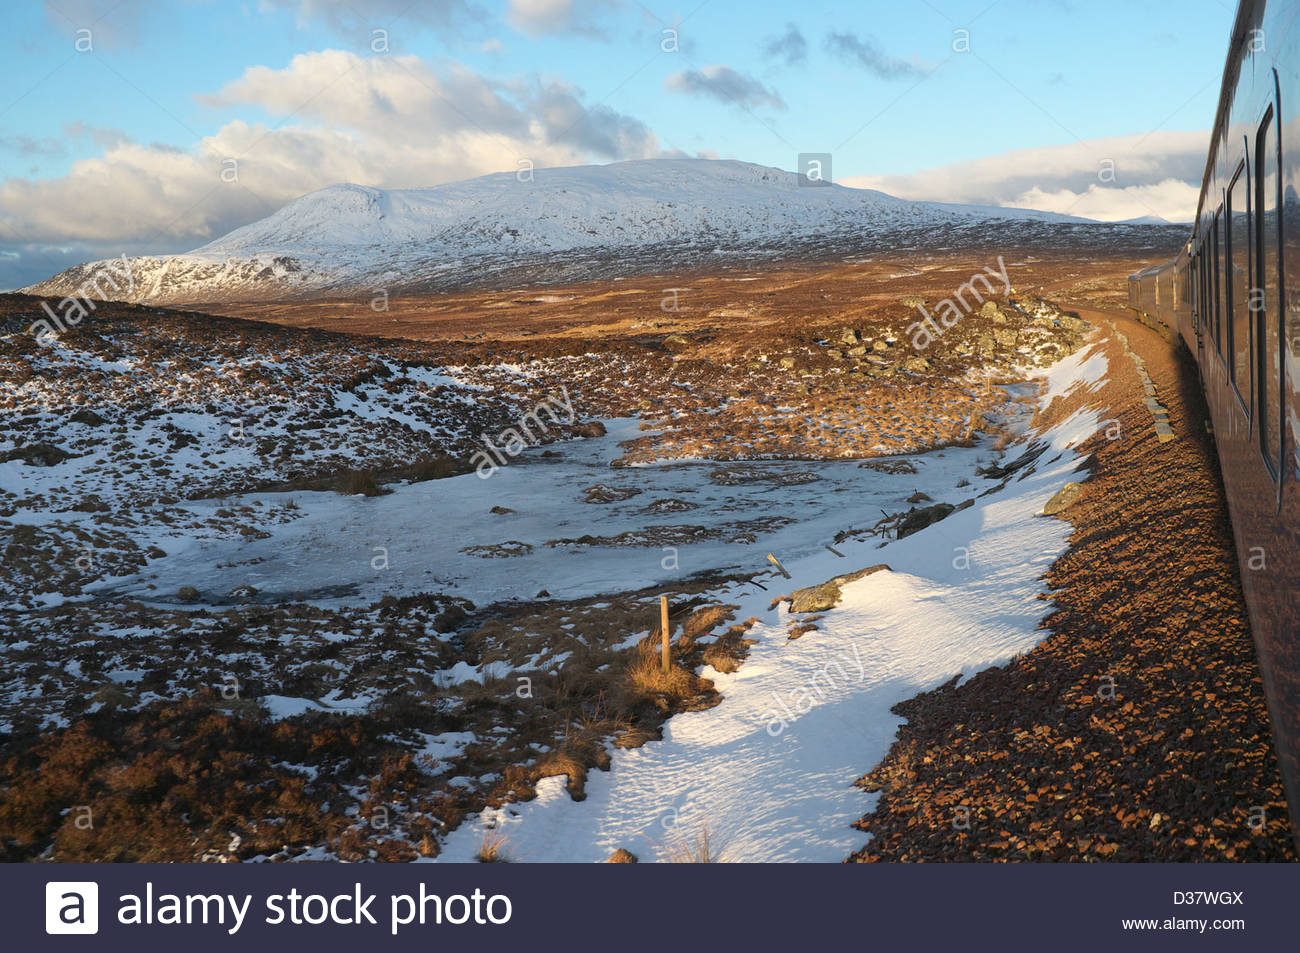 The Caledonian Sleeper Service From London To Fort William Travels Across Rannoch Moor On West Highland Line Scotland UK